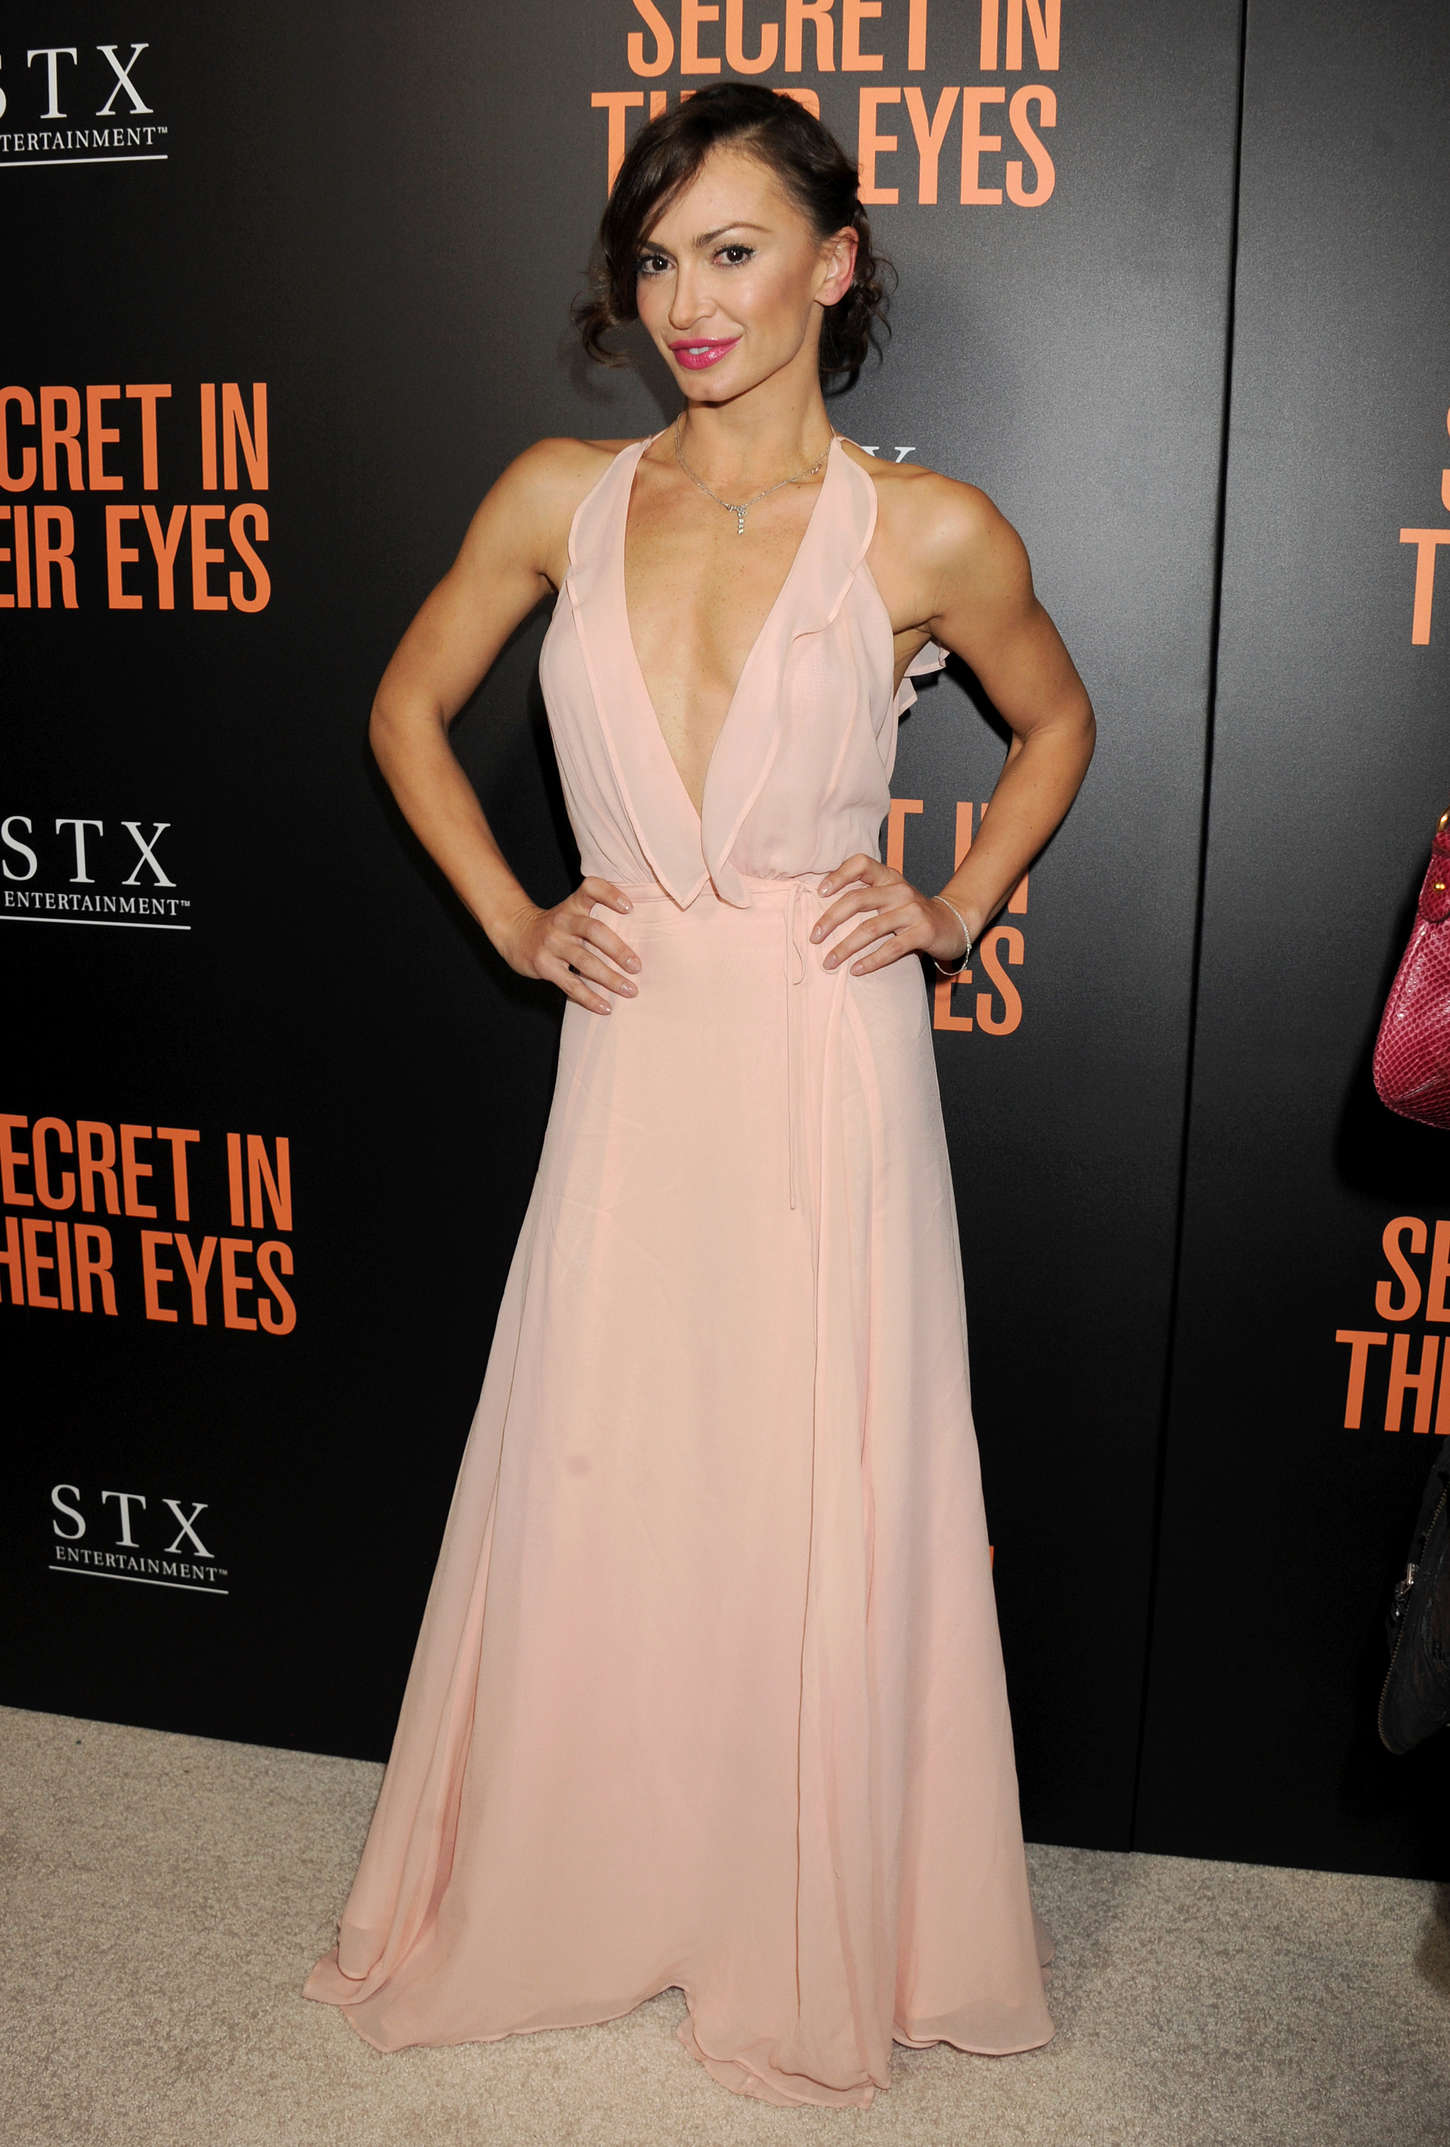 Karina Smirnoff Secret In Their Eyes Premiere in Westwood